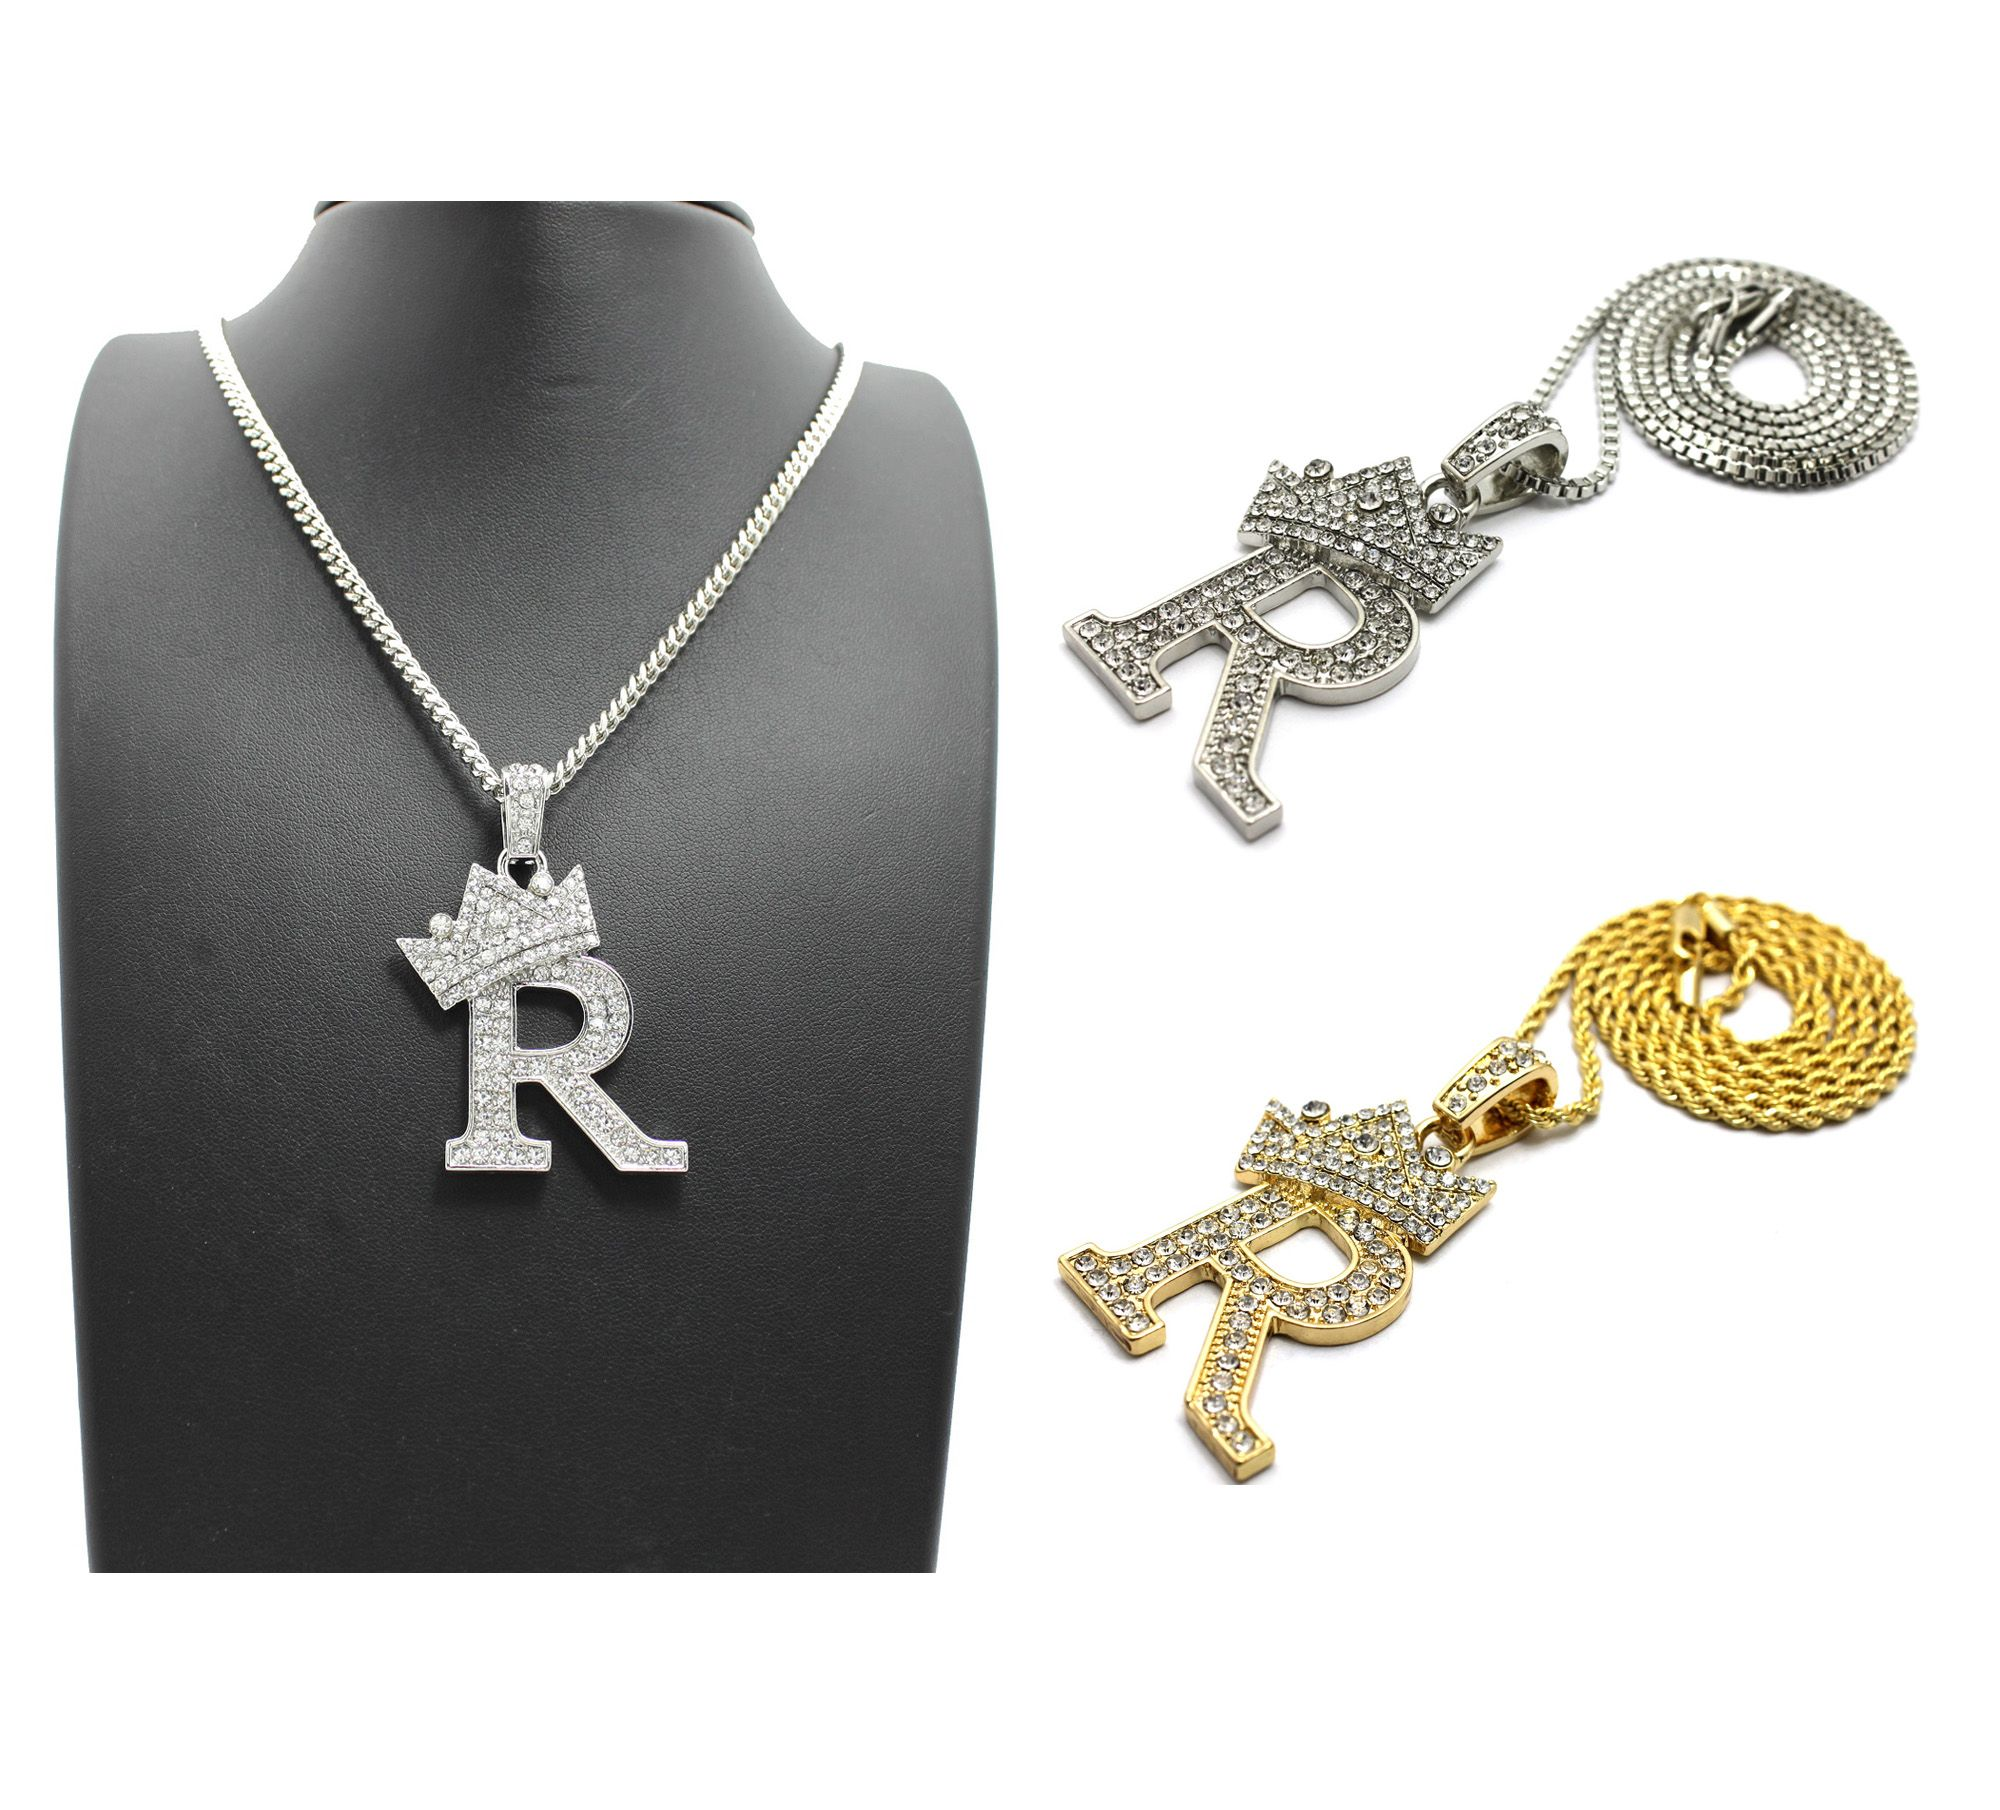 Iced out king r pendant 24 boxcubanropefox chain hip hop chain pendants mozeypictures Gallery